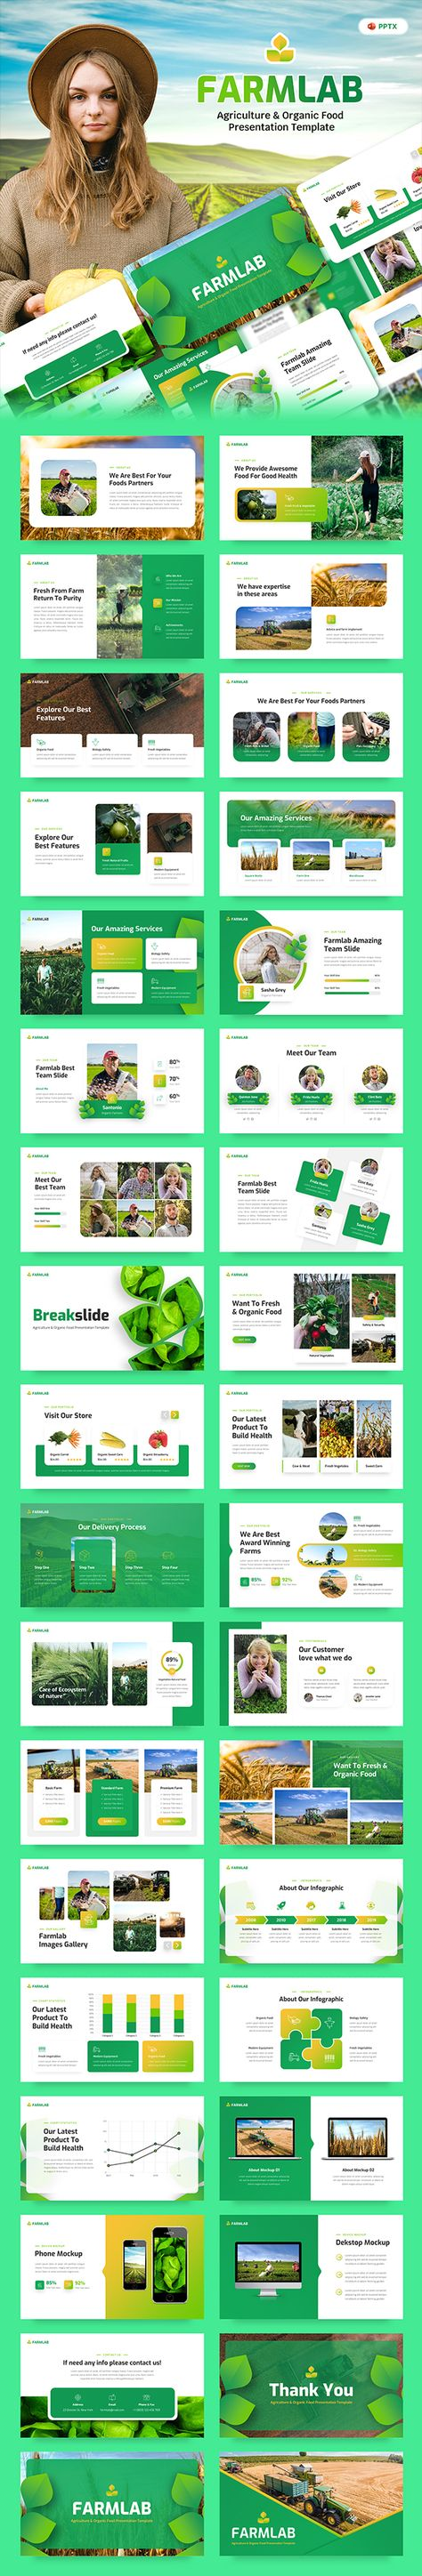 Farmlab - Agriculture & Organic Food PowerPoint Presentation Template